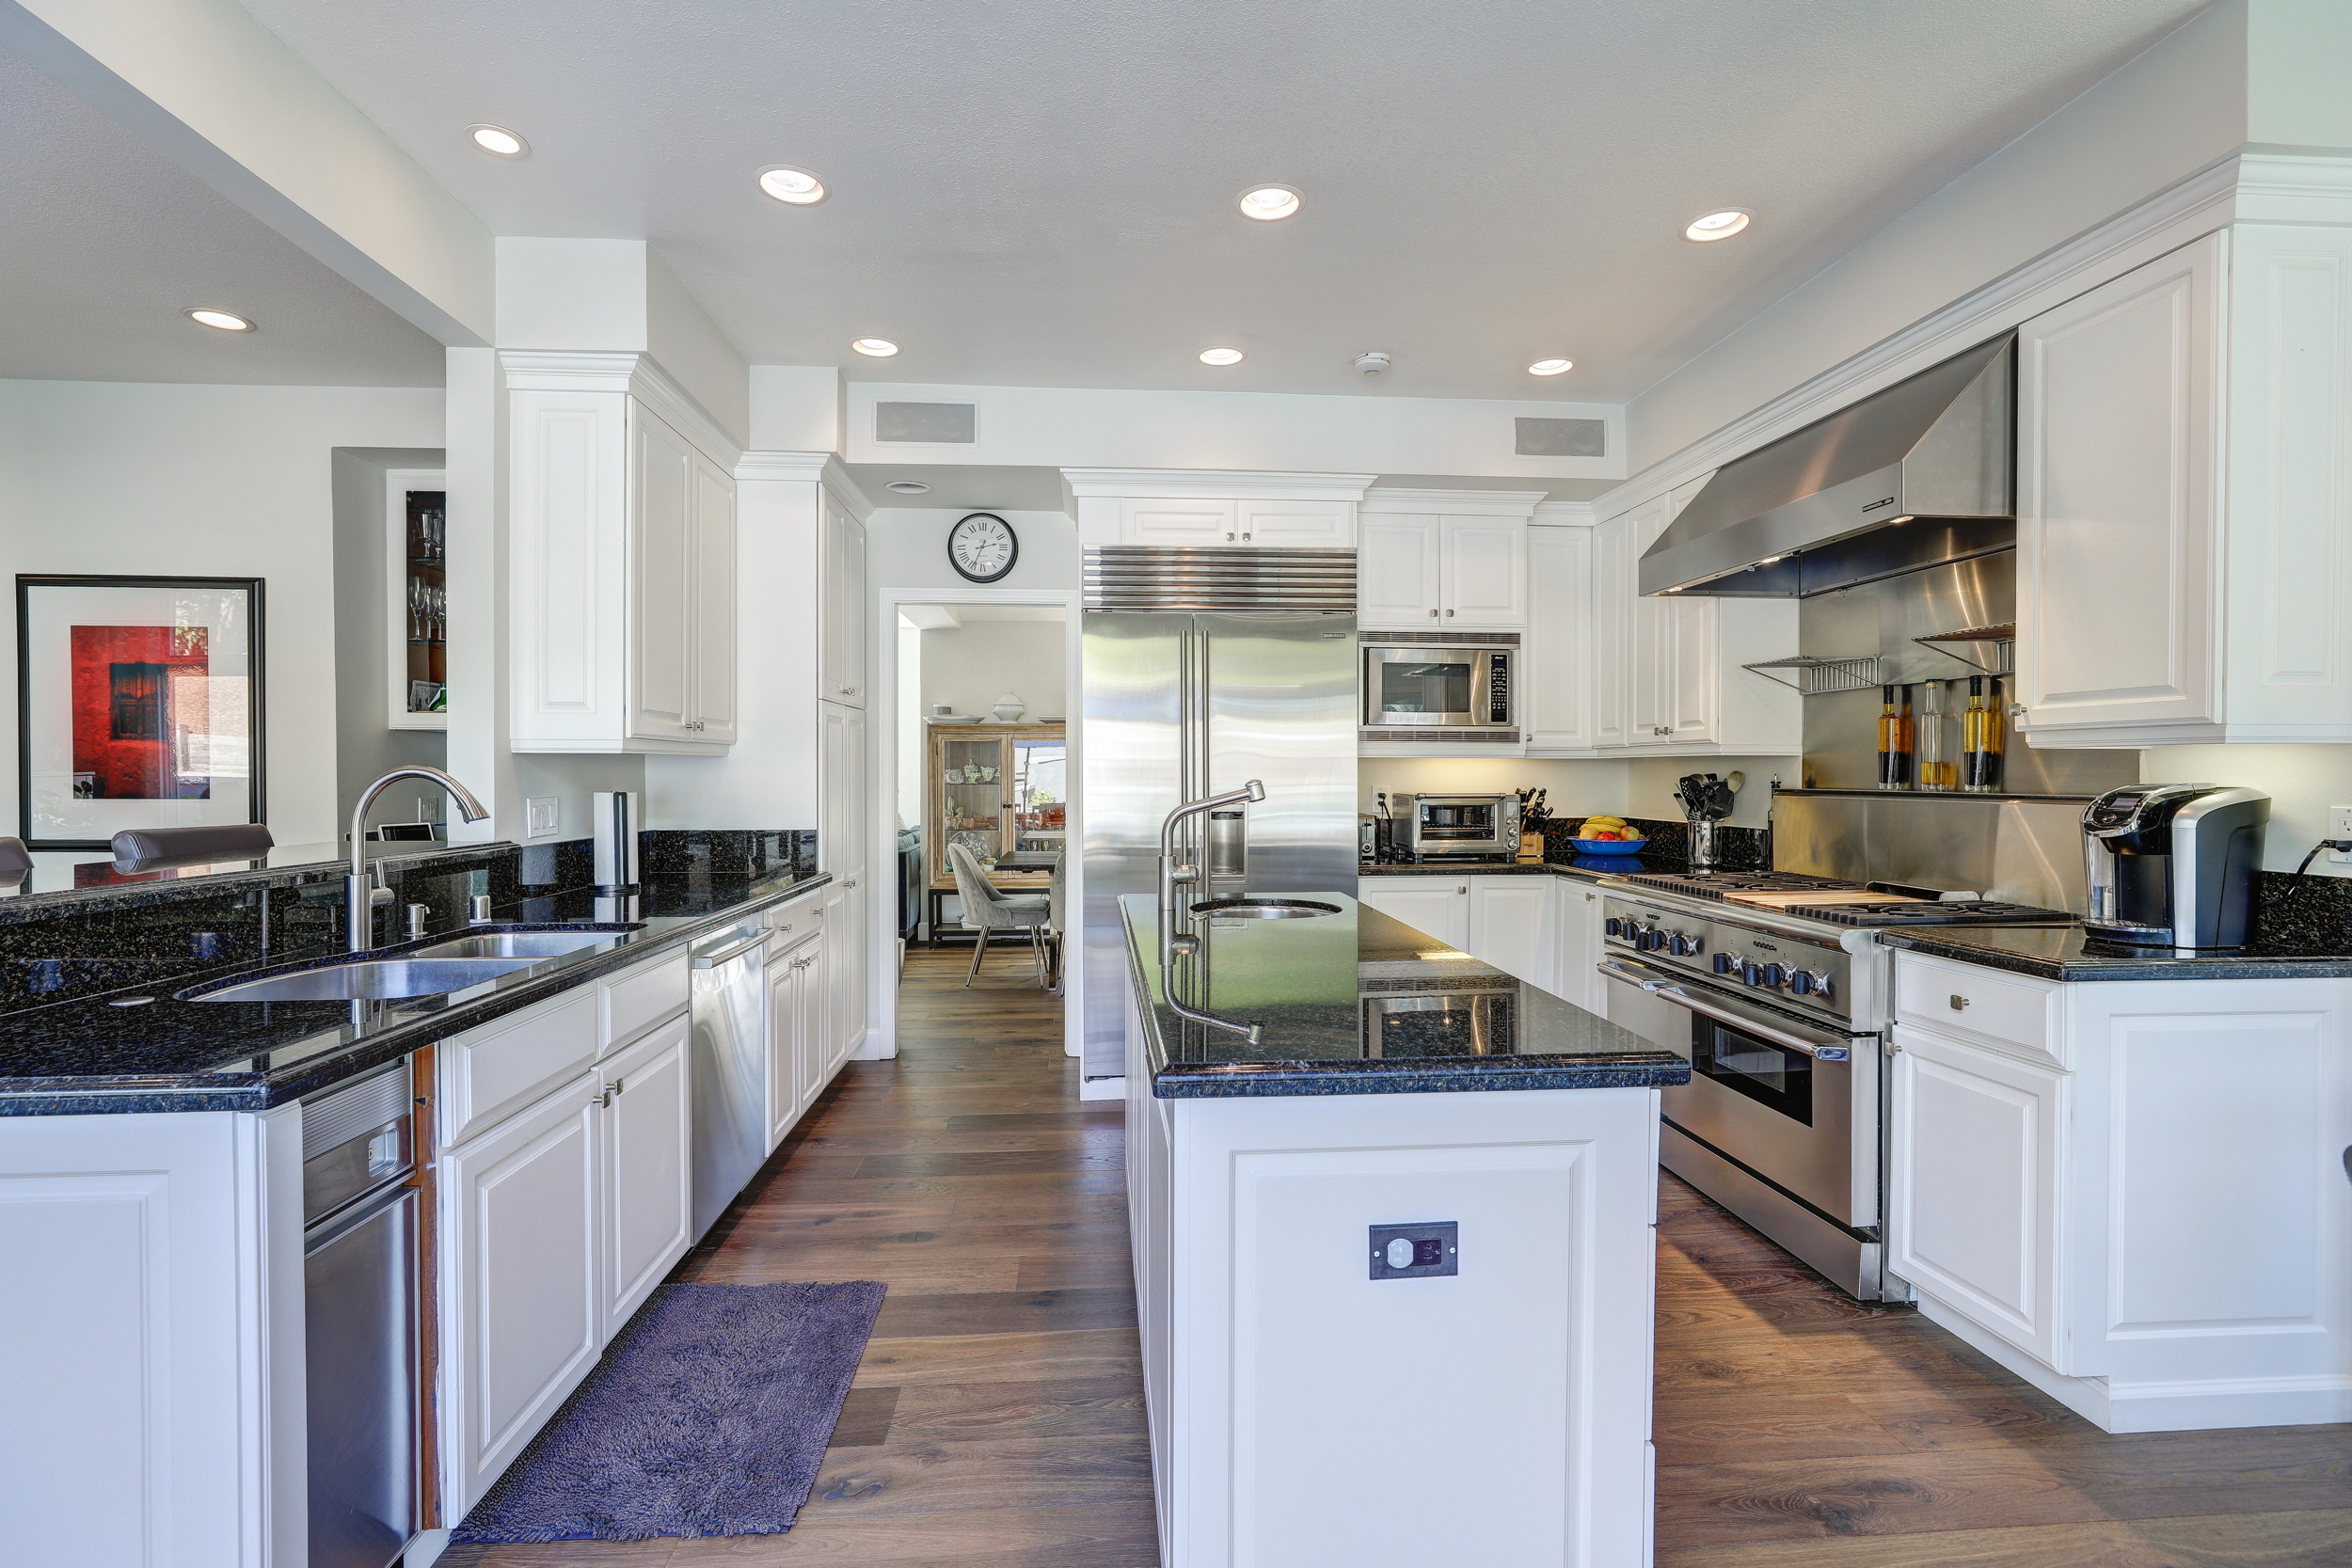 8Parkside 35 - Own Marin with Compass - Marin County Best Realtor.jpg